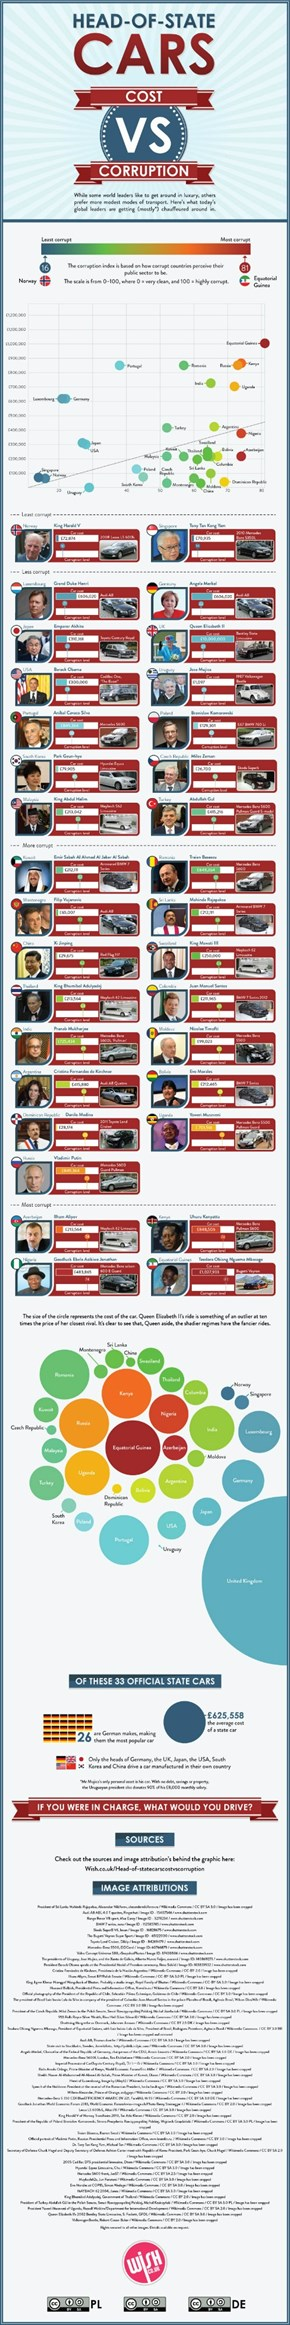 Head of State Cars: Cost Vs Corruption